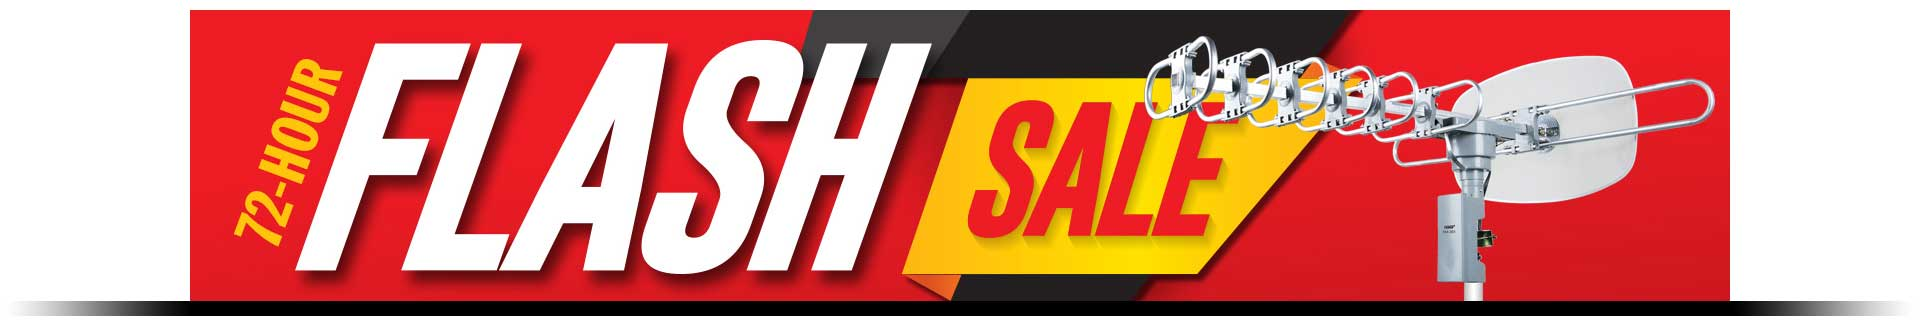 72 Hour Weekend Flash Sale: Stock up now on Month End ESSENTIALS!